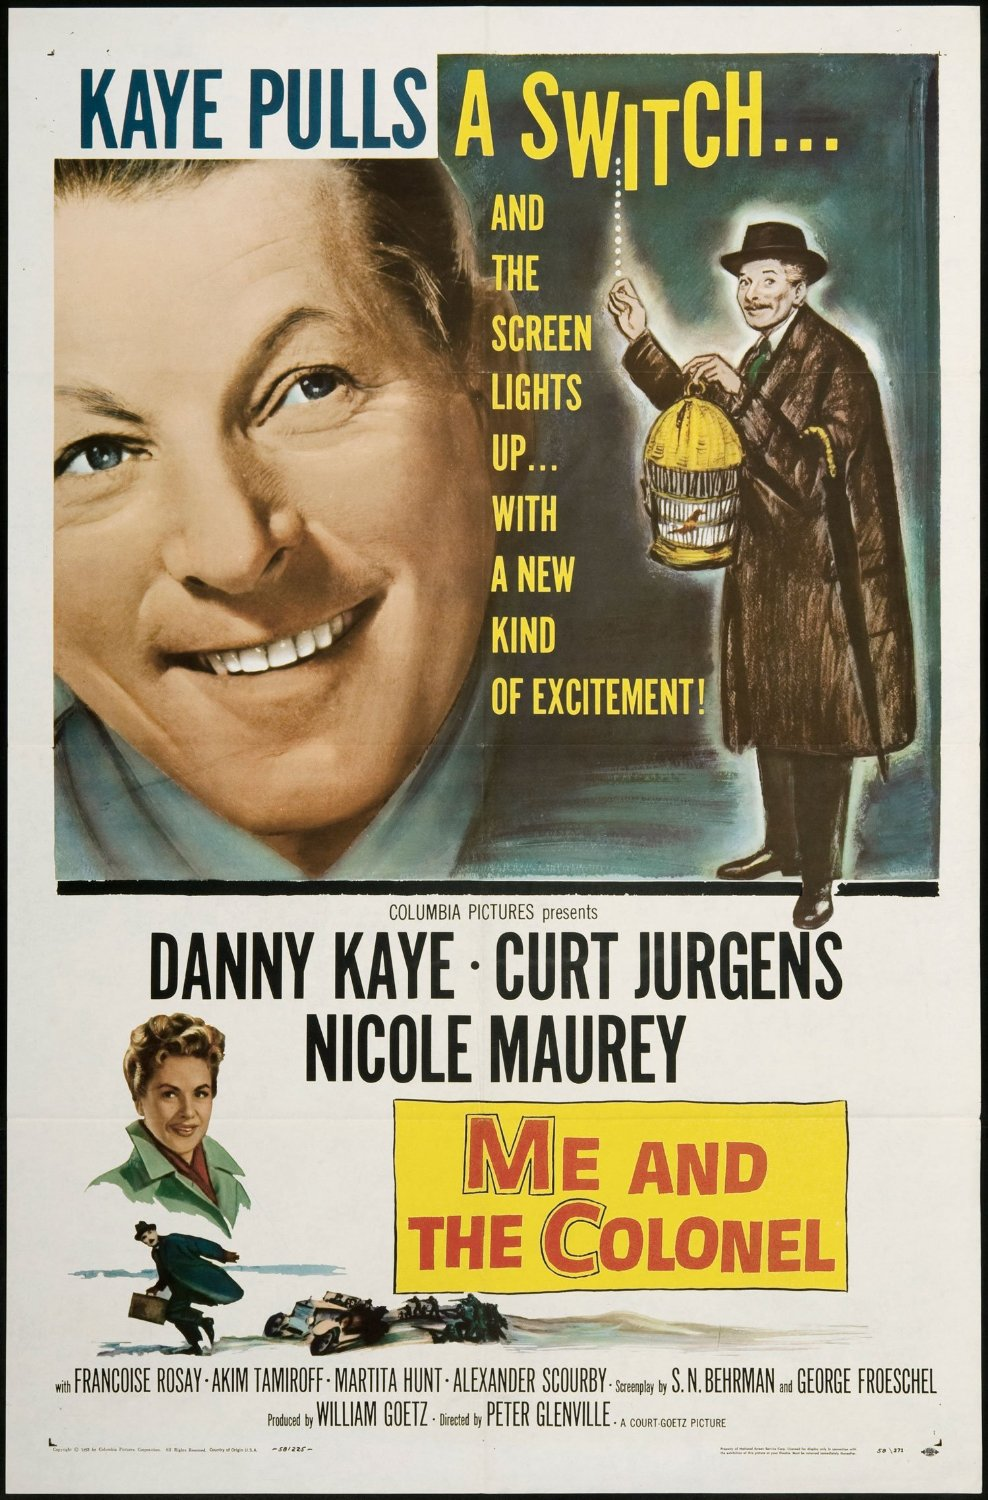 Funny movie quotes from Me and the Colonel, starring Danny Kaye